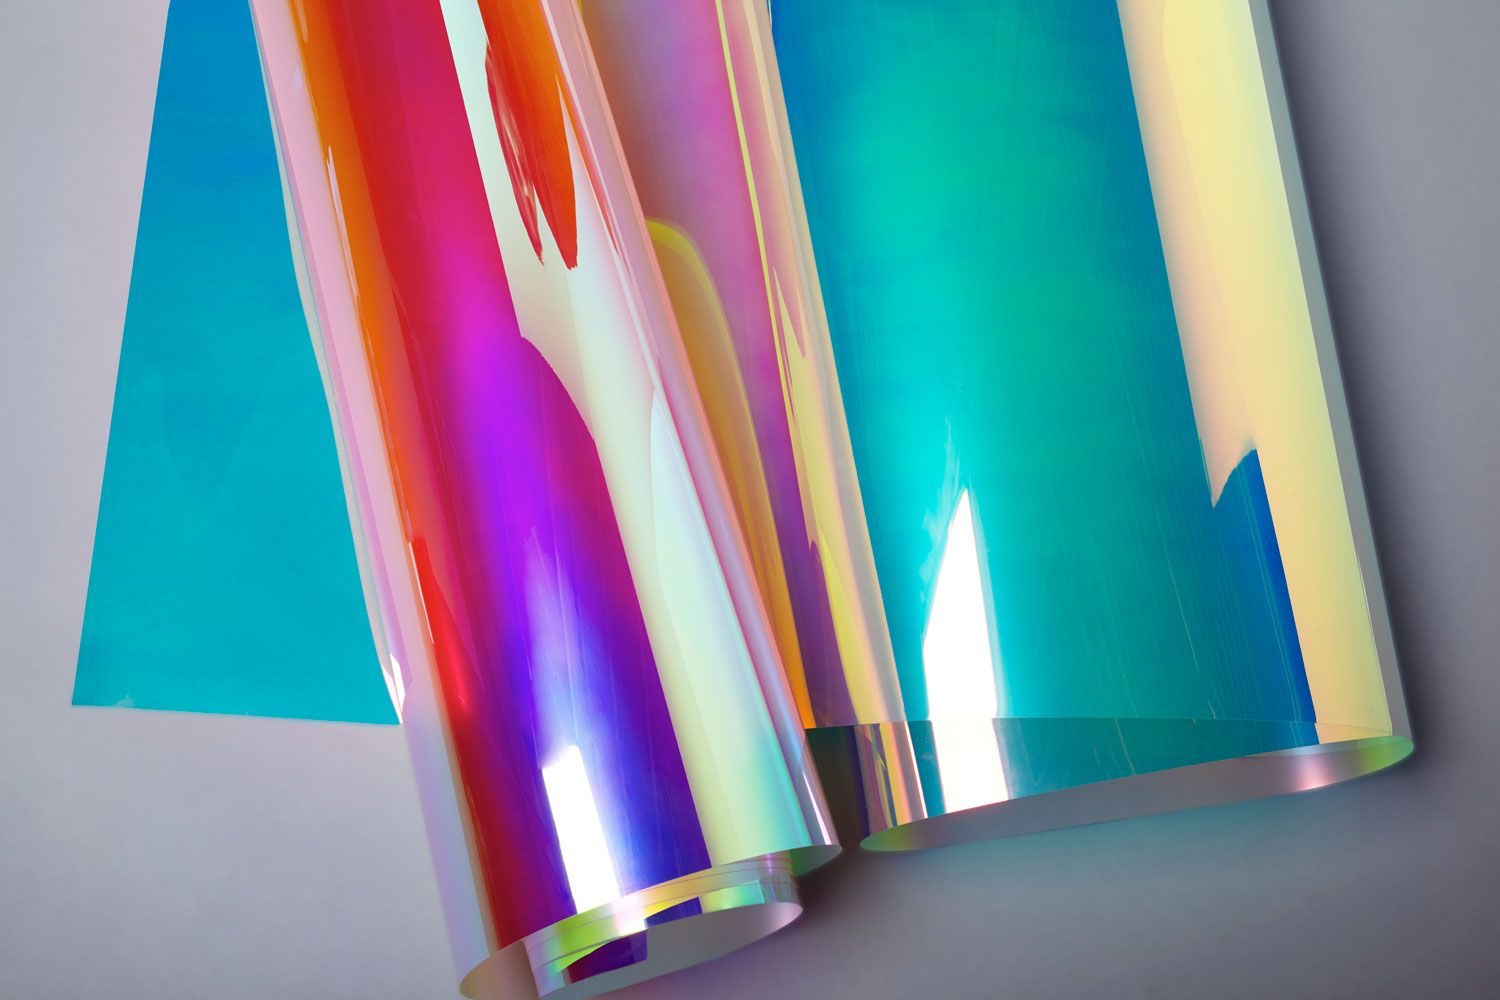 3m dichroic glass finishes come in two different color waves  blaze  left  and chill  right